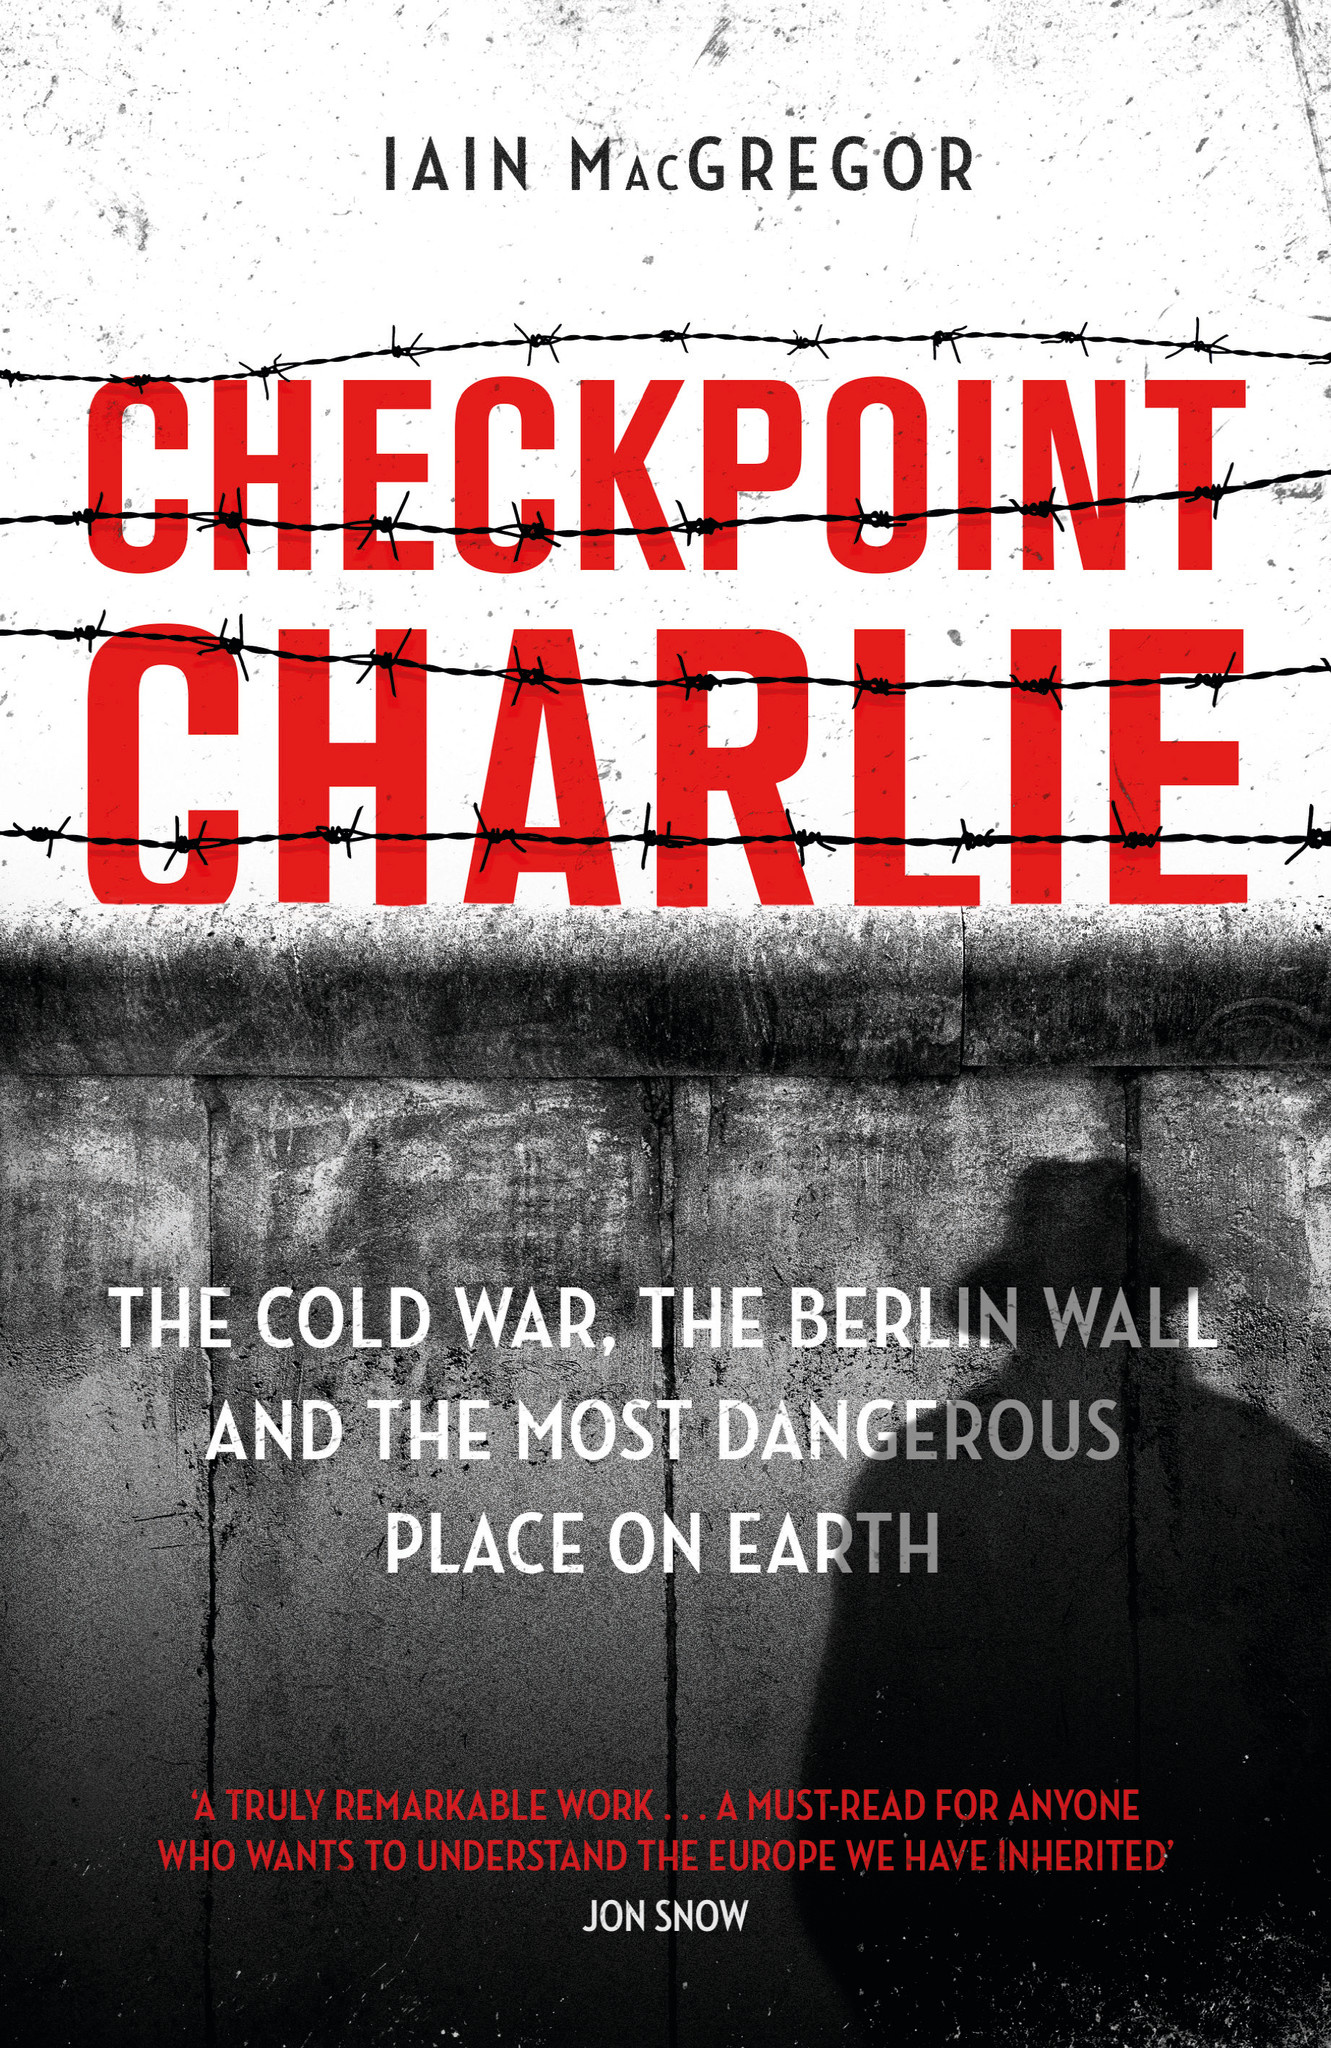 Checkpoint Charlie: The Cold War, the Berlin Wall and the Most Dangerous Place on Earth Author Iain MacGregor